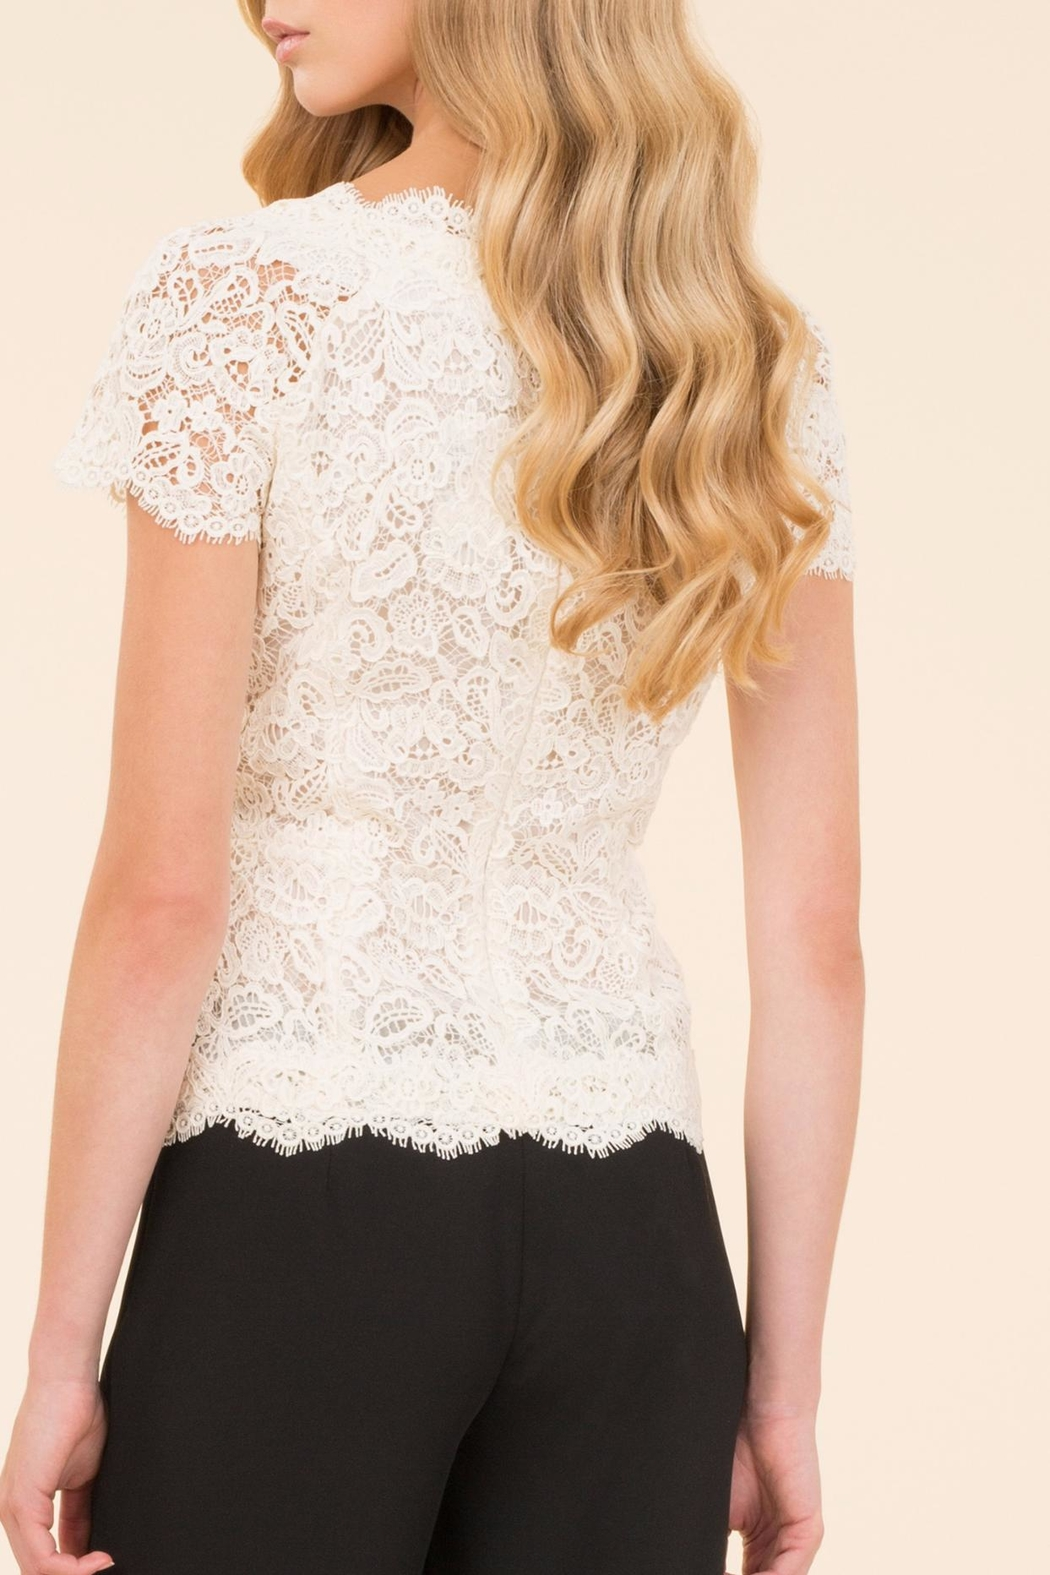 Luisa Spagnoli Cream Lace Top - Front Full Image